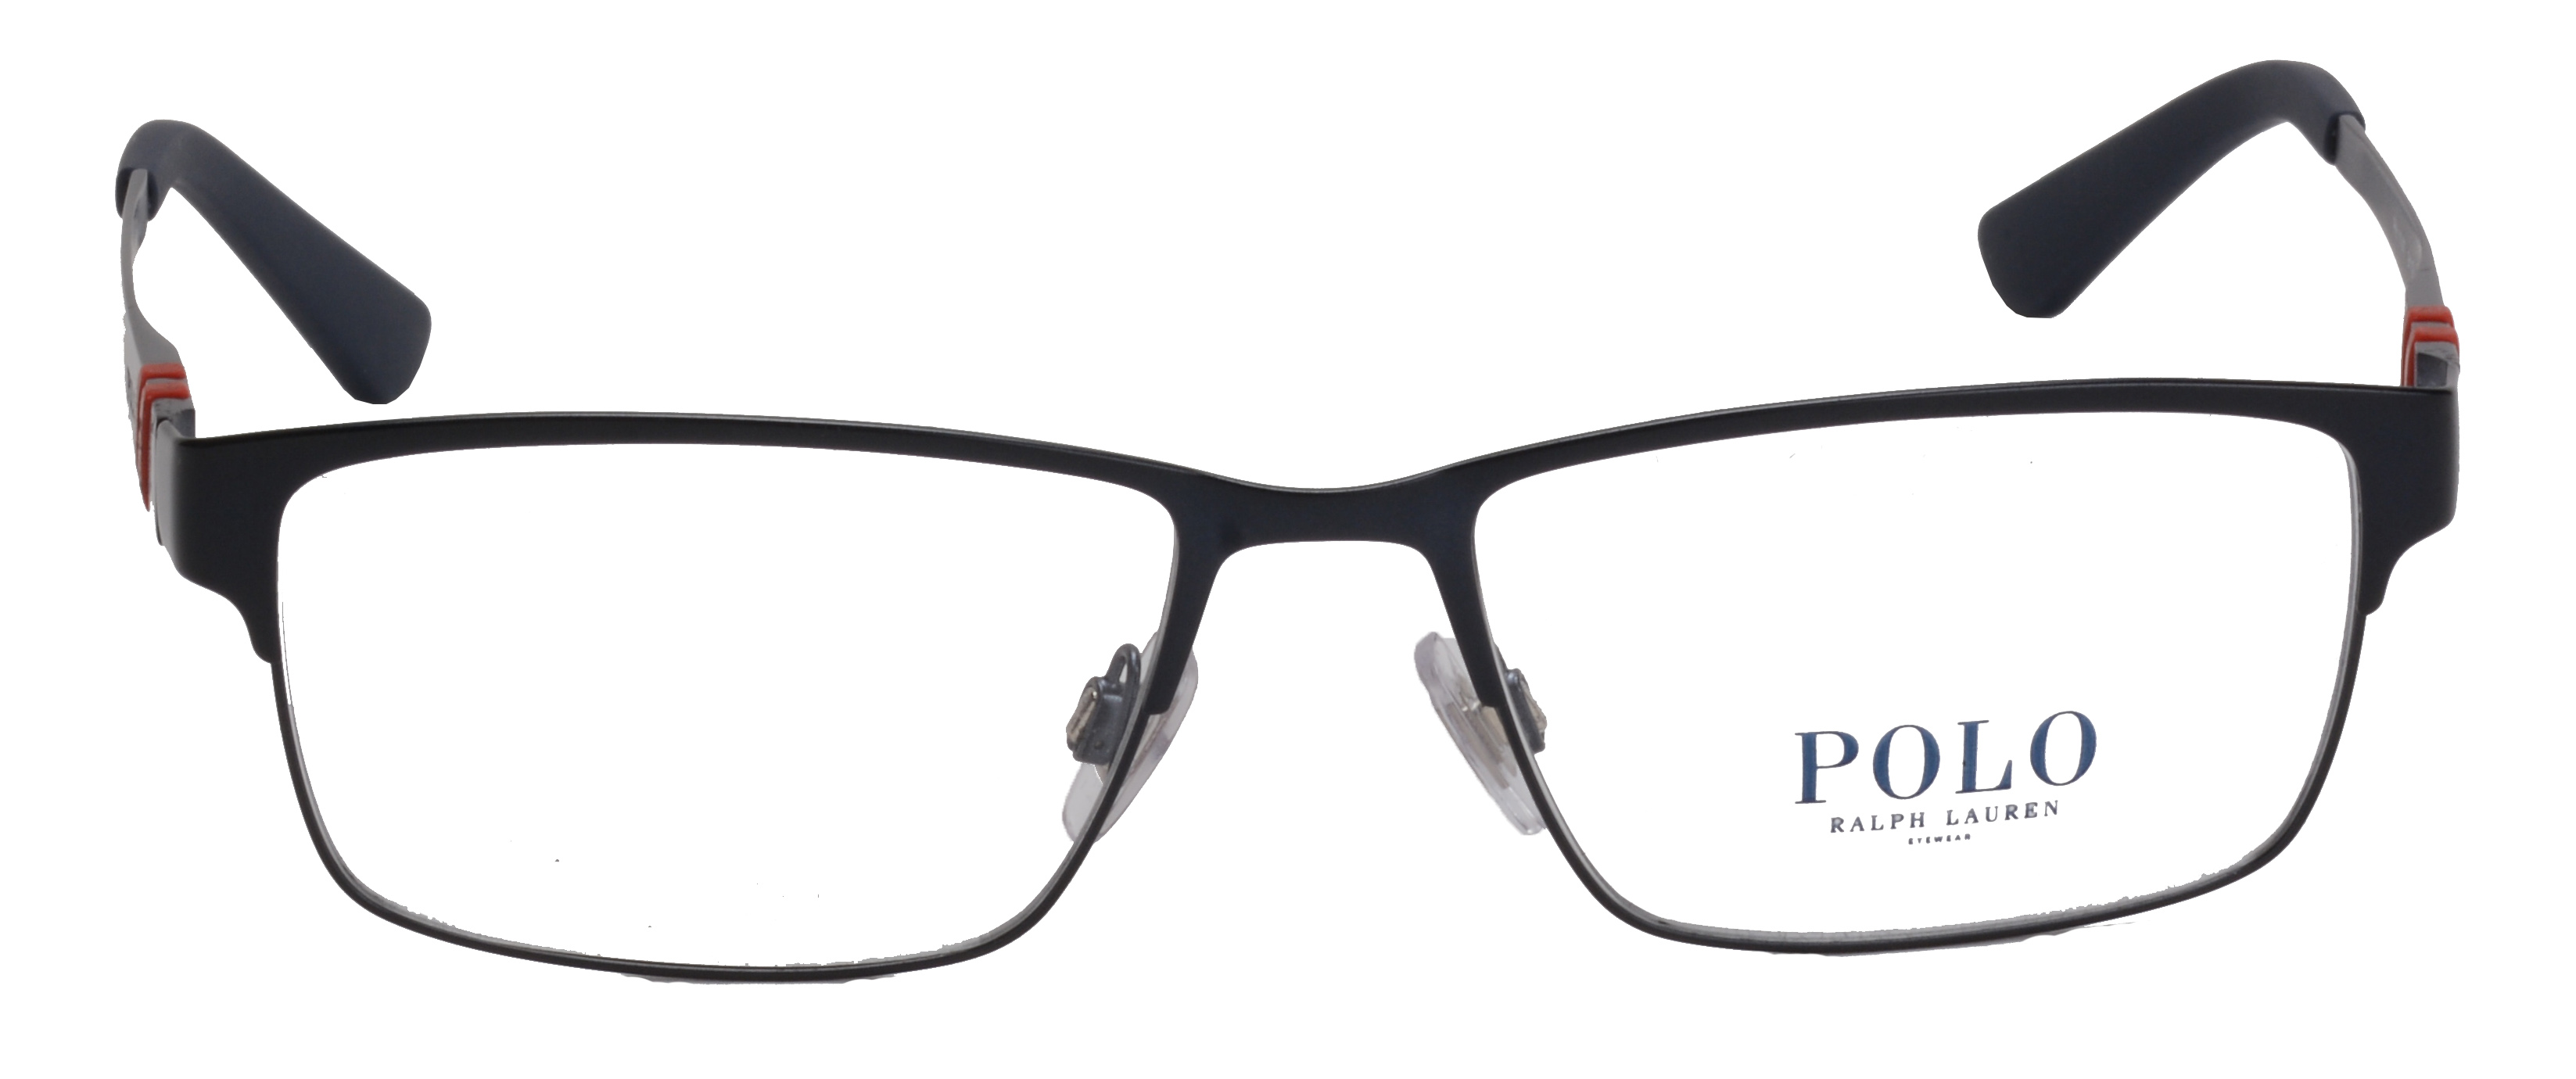 Polo By Ralph Lauren Men S Eyewear Frames Ph 54mm